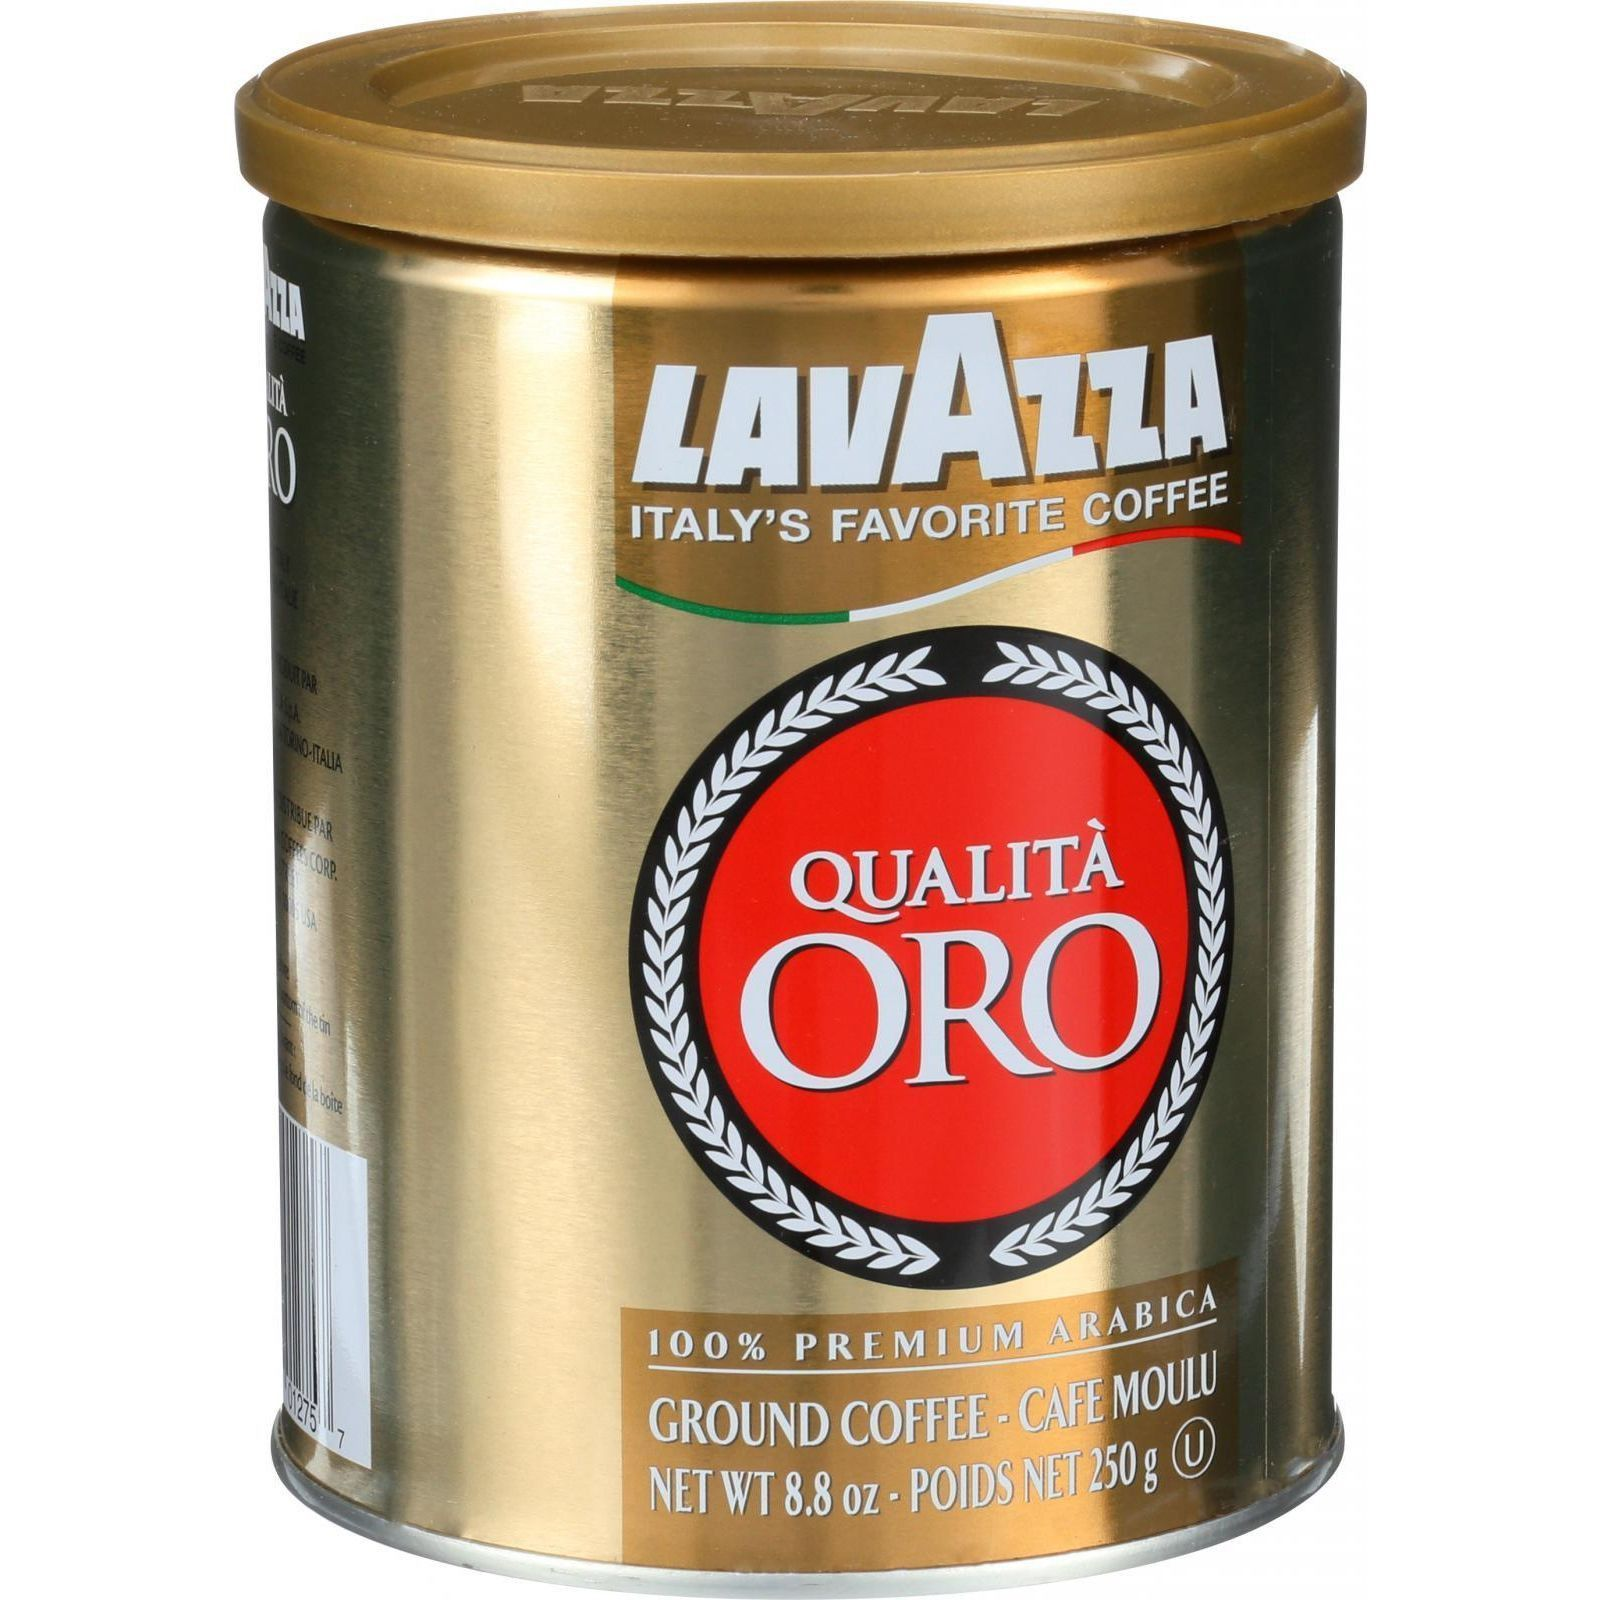 LavAzza Coffee Quality Gold Ground 8.8 oz Can